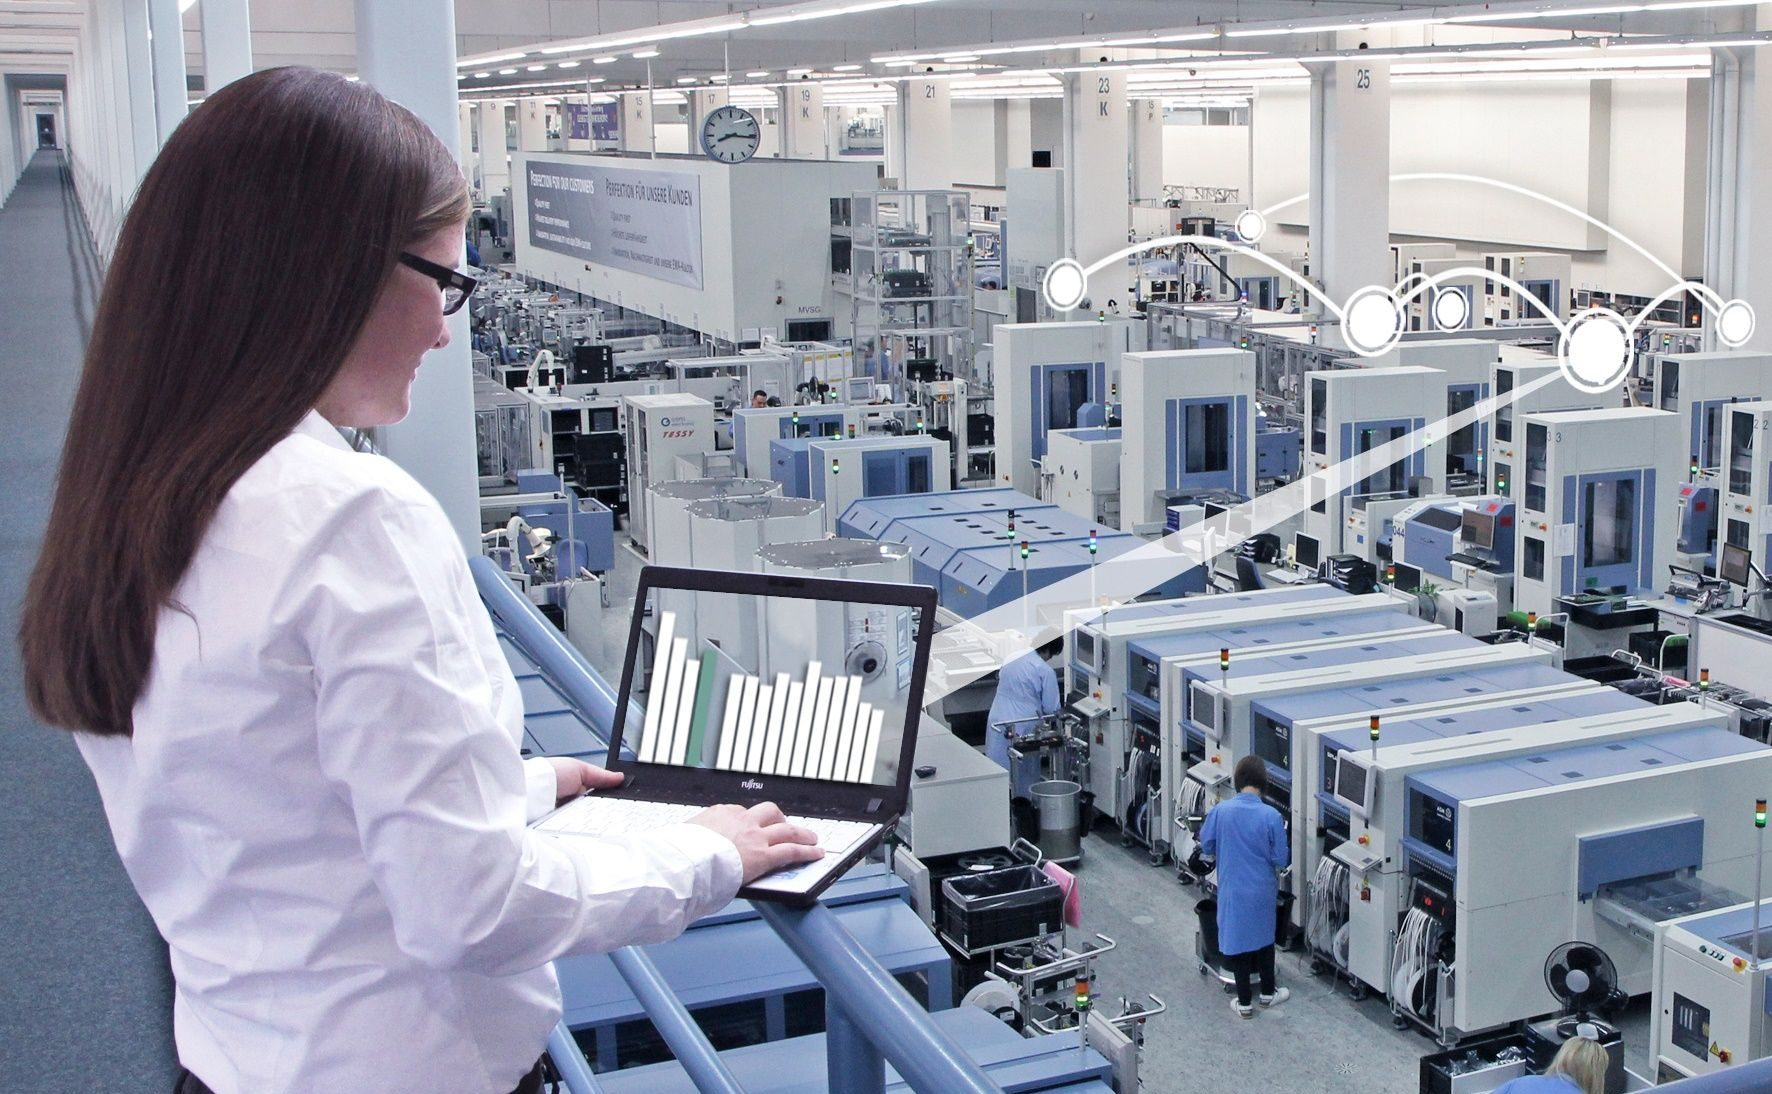 Digitalization in mechanical engineering sector: the key to improving productivity and performance